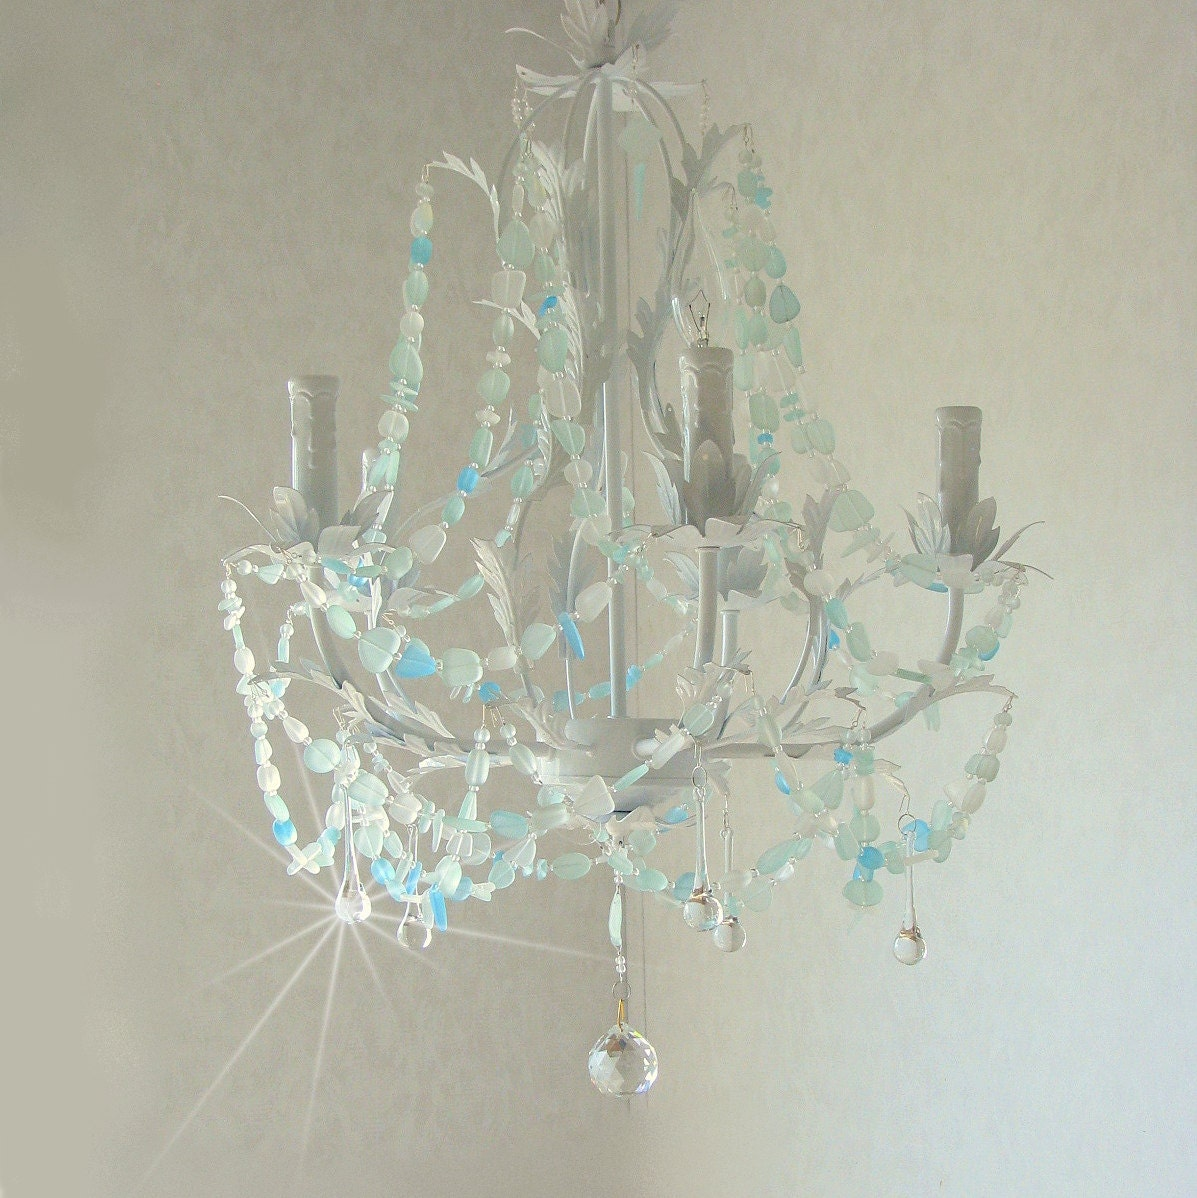 Sea glass chandelier lighting beach cottage chic coastal decor zoom arubaitofo Image collections